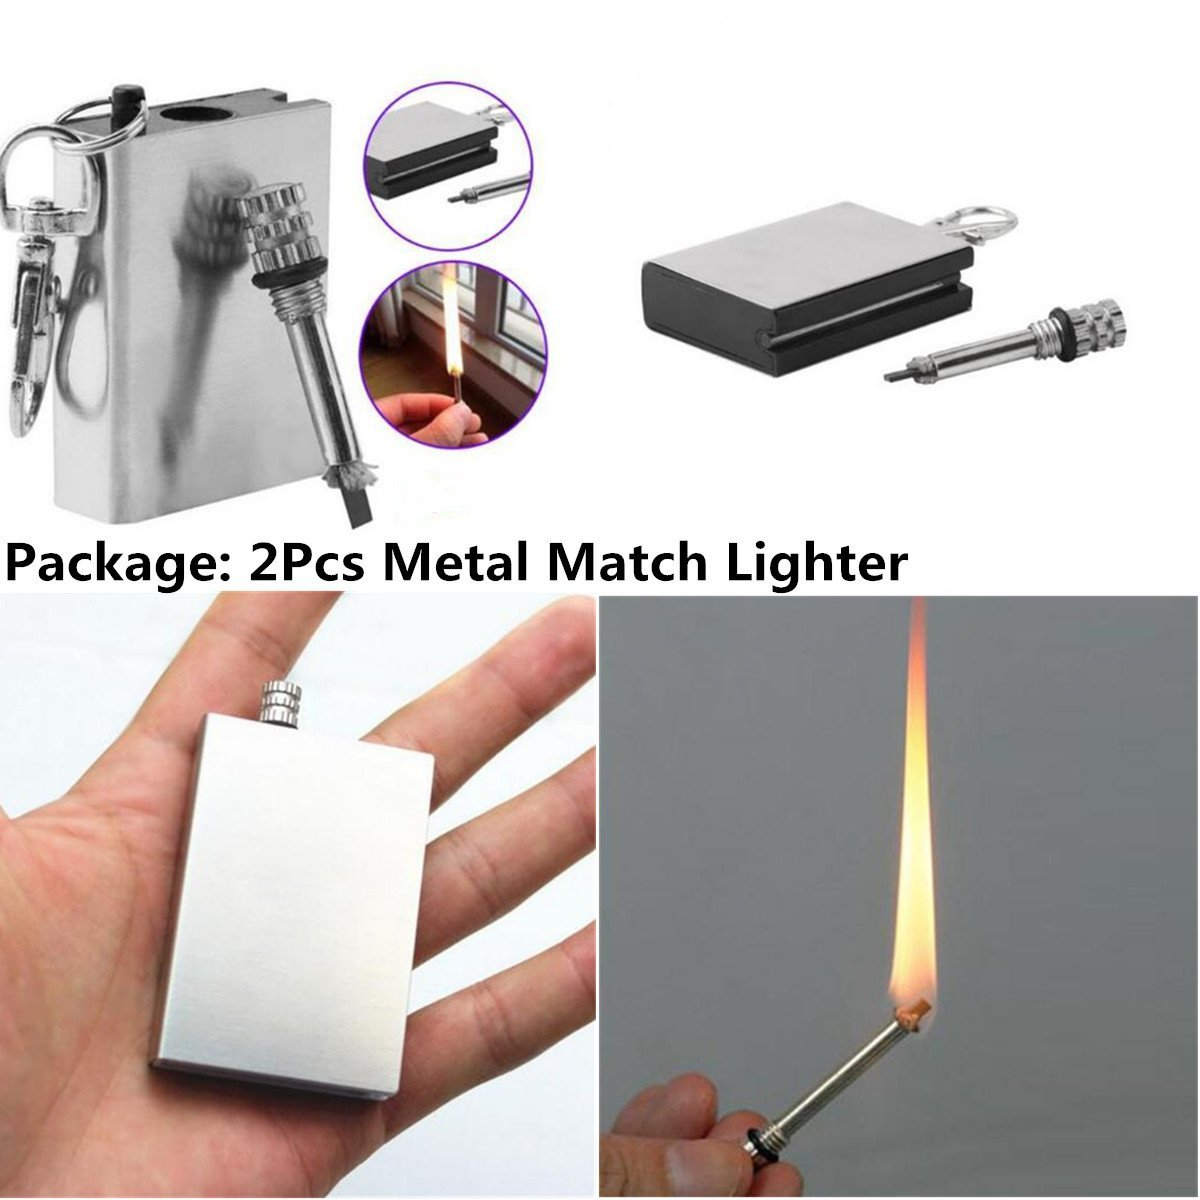 2PCS mini acciaio INOX permanente Fire metal partite accendino con portachiavi smoking Striker Lighter Ltd